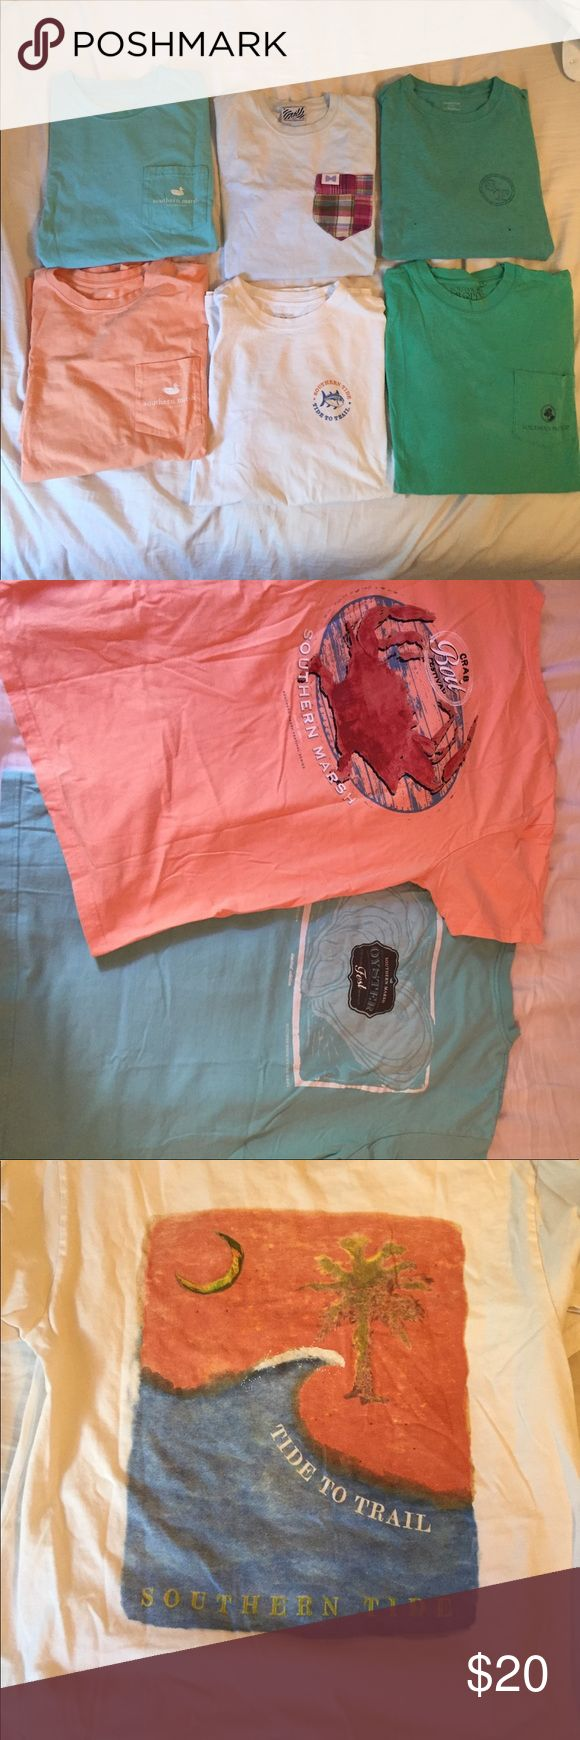 Southern Prep Style Tee Shirt Lot All have been preloved and are men's sizes. Orange & Blue Southern Marsh Shirts are both Size Medium. Southern Proper size Medium. Has small staining on front shown in pictures. Fraternity Collection Plaid Pocket Tee size small. Both Southern Tide Shirts are an xtra small. Green southern tide shirt has two holes in the front. Ask if you'd like to separate !! Southern Tide Tops Tees - Short Sleeve